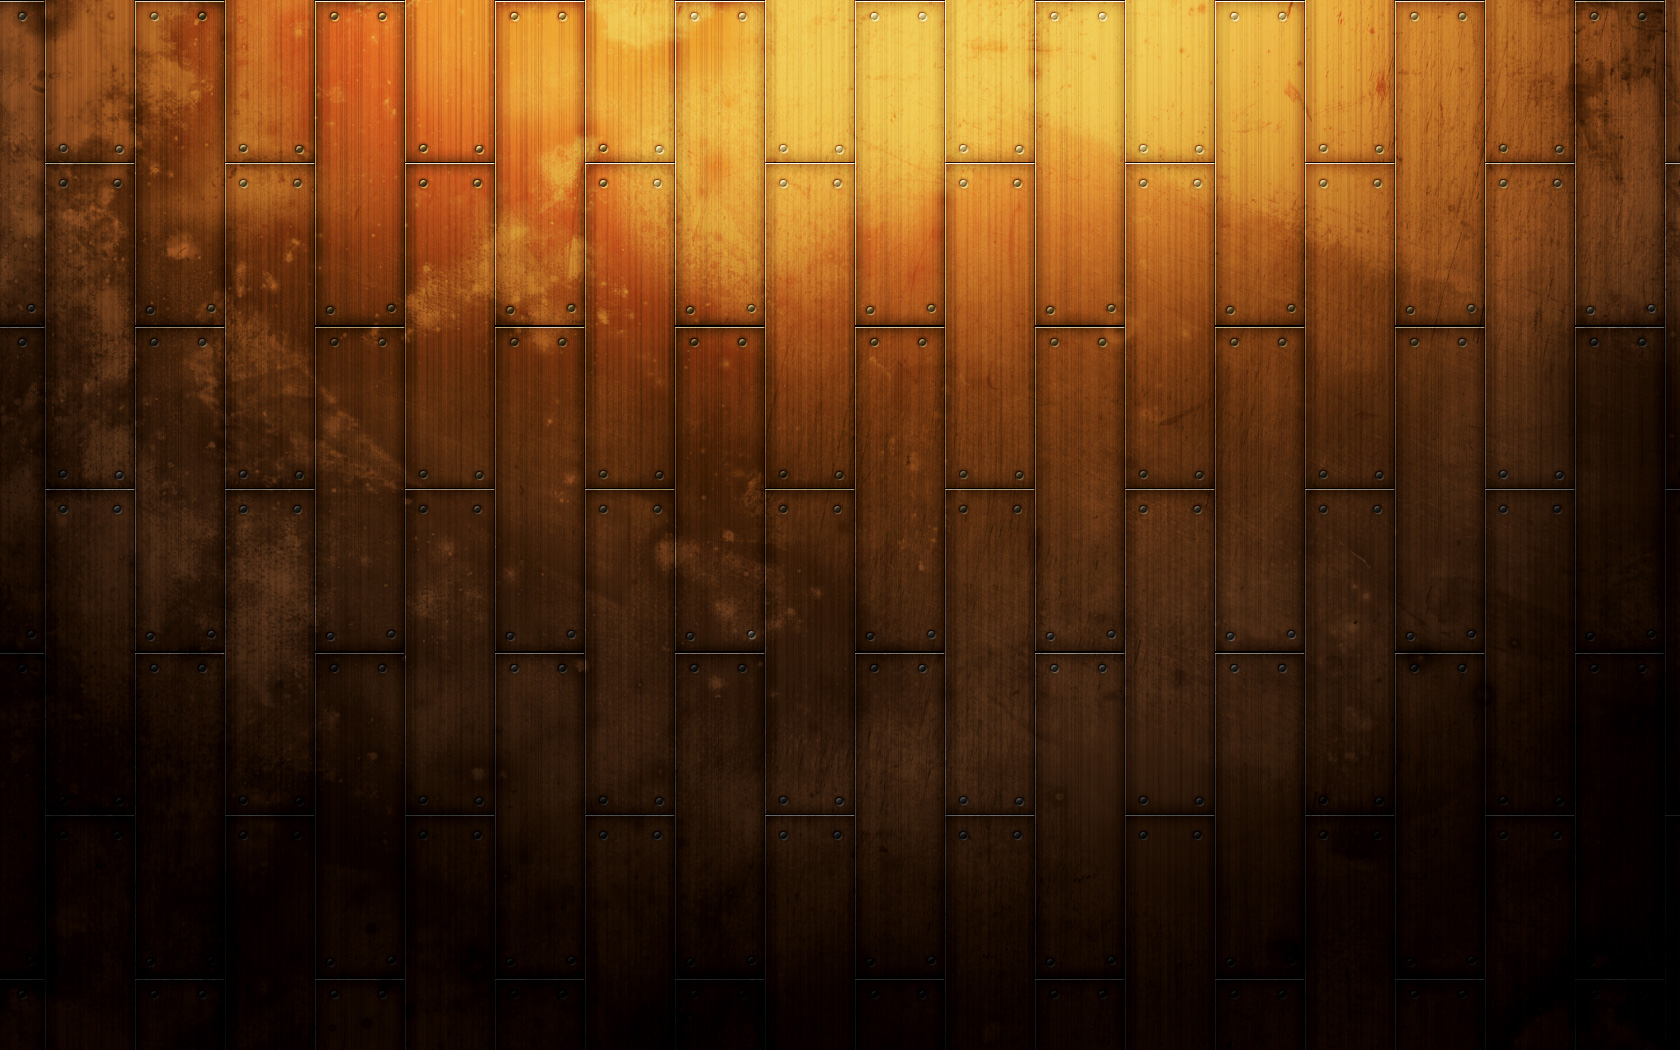 Background Images For Photoshop 1680x1050